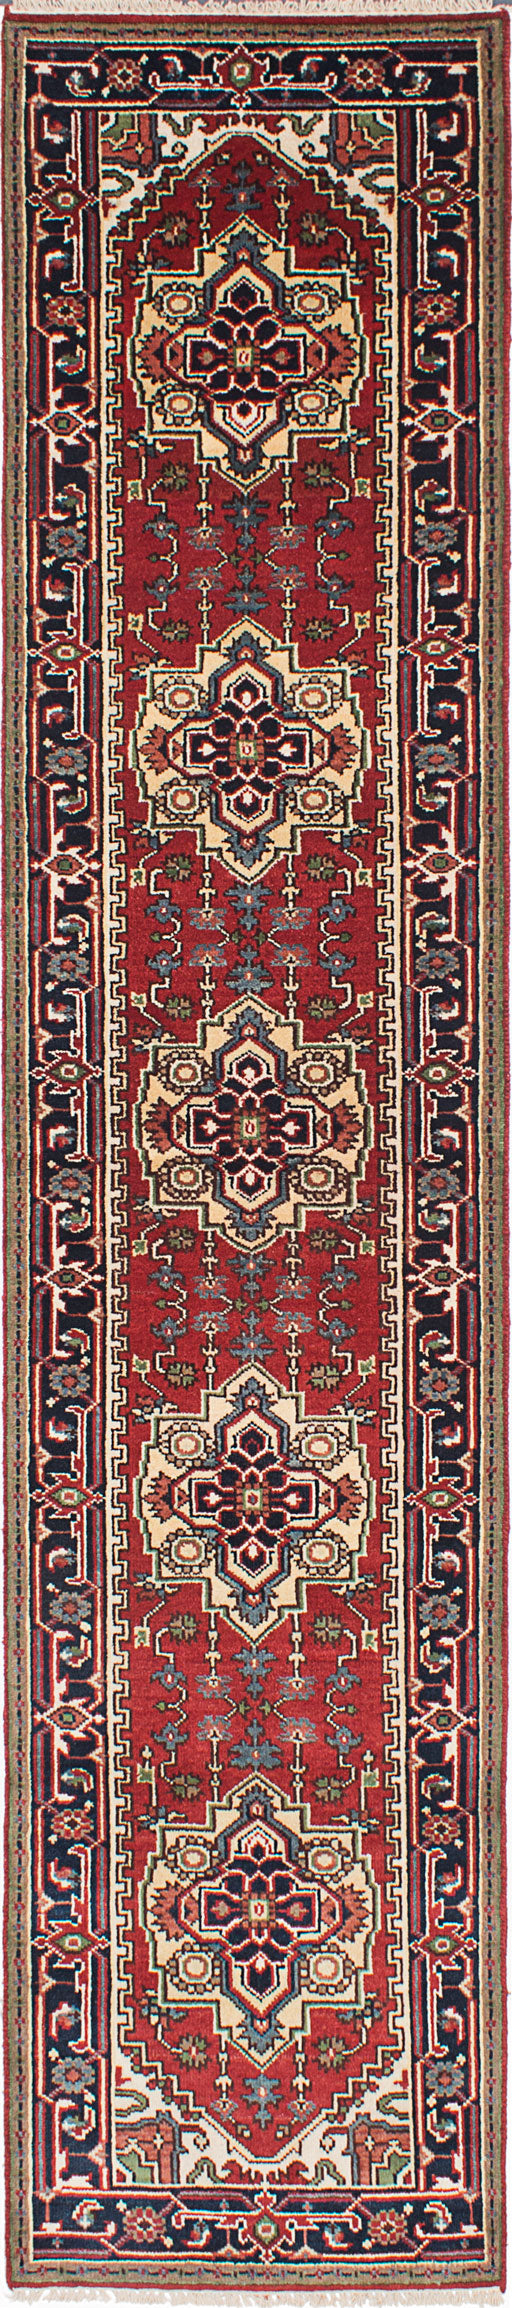 "Hand-knotted Indian Floral  Traditional Serapi-Heritage Runner rug  Dark Copper, Dark Navy 2'7 x 12'2"" """